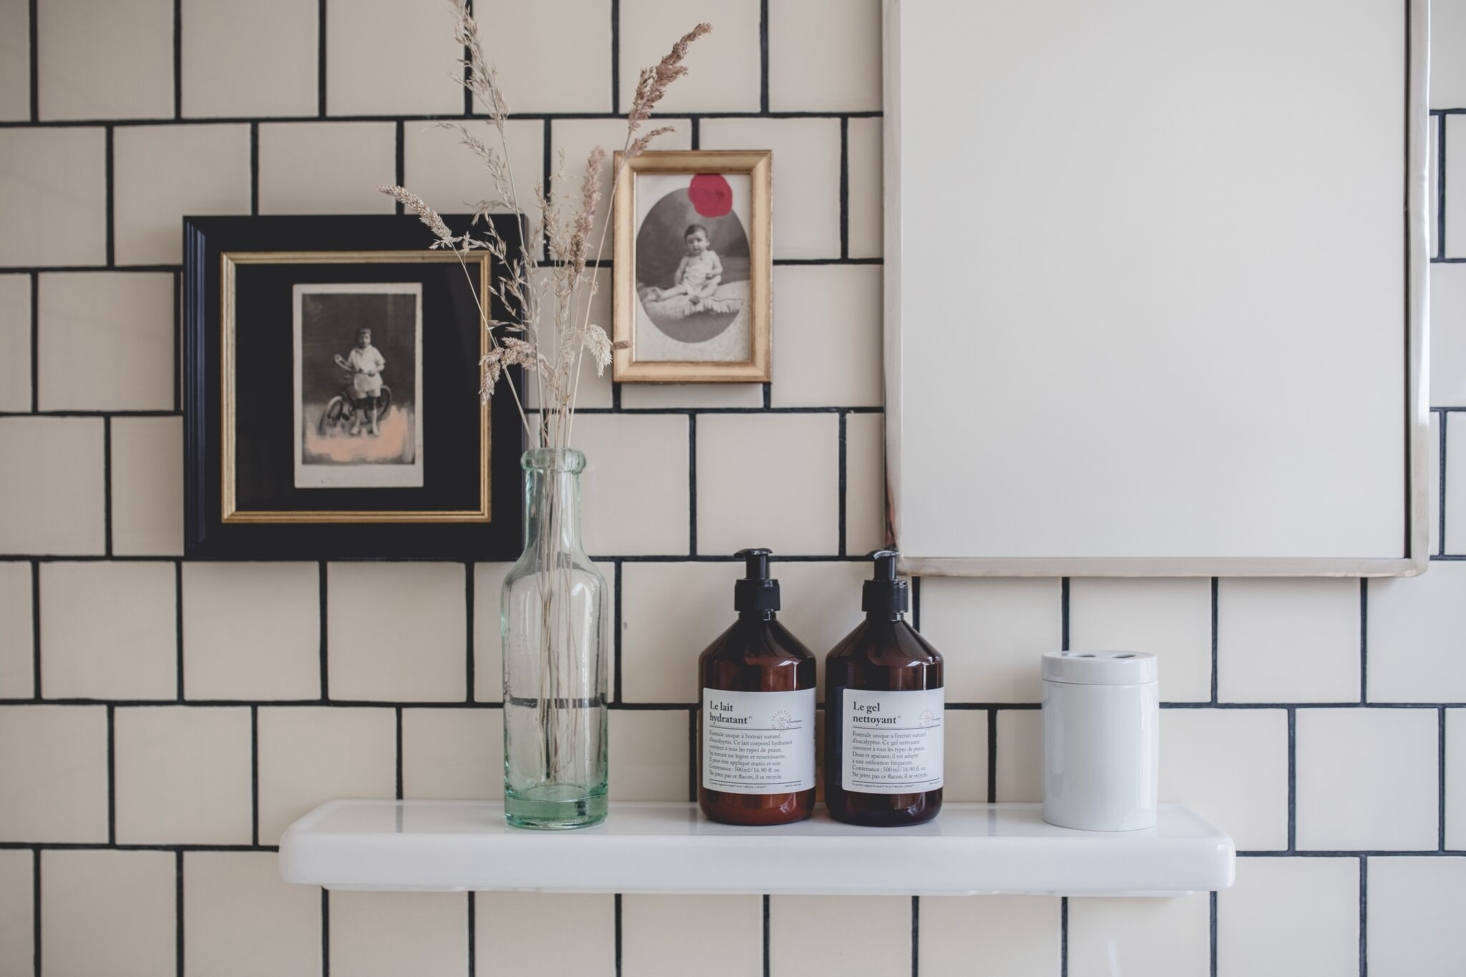 Is it possible to fall in love with a bathroom shelf? Mais oui. Fan spotted this porcelain one in a Remodelista story about Le Barn resort, and tracked down similar versions. See Design Sleuth: A Bathroom Storage Must with Old-Fashioned Charm. Photograph by Nomades, courtesy of Le Barn.